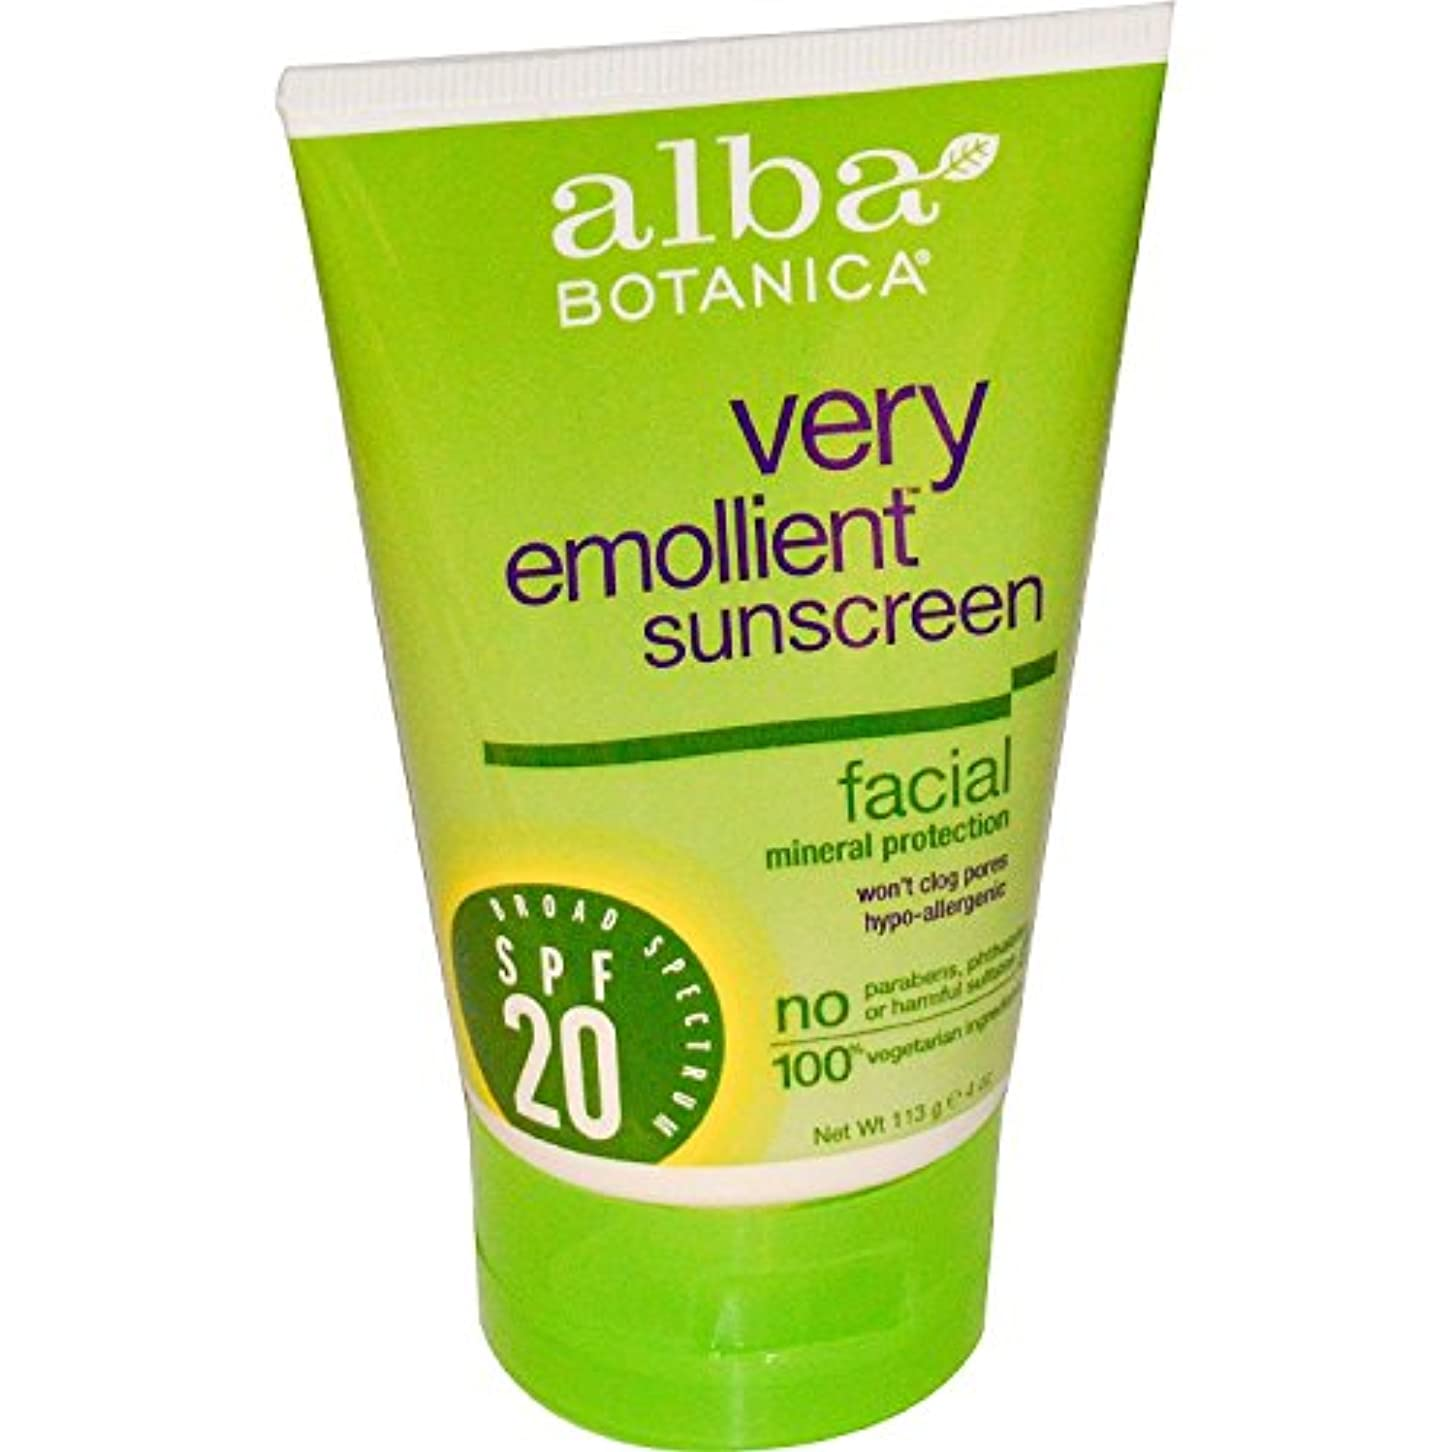 からまで不毛のNatural Sunblock - Very Emollient - Mineral SPF 20 - Facial - 4 oz by Alba Botanica